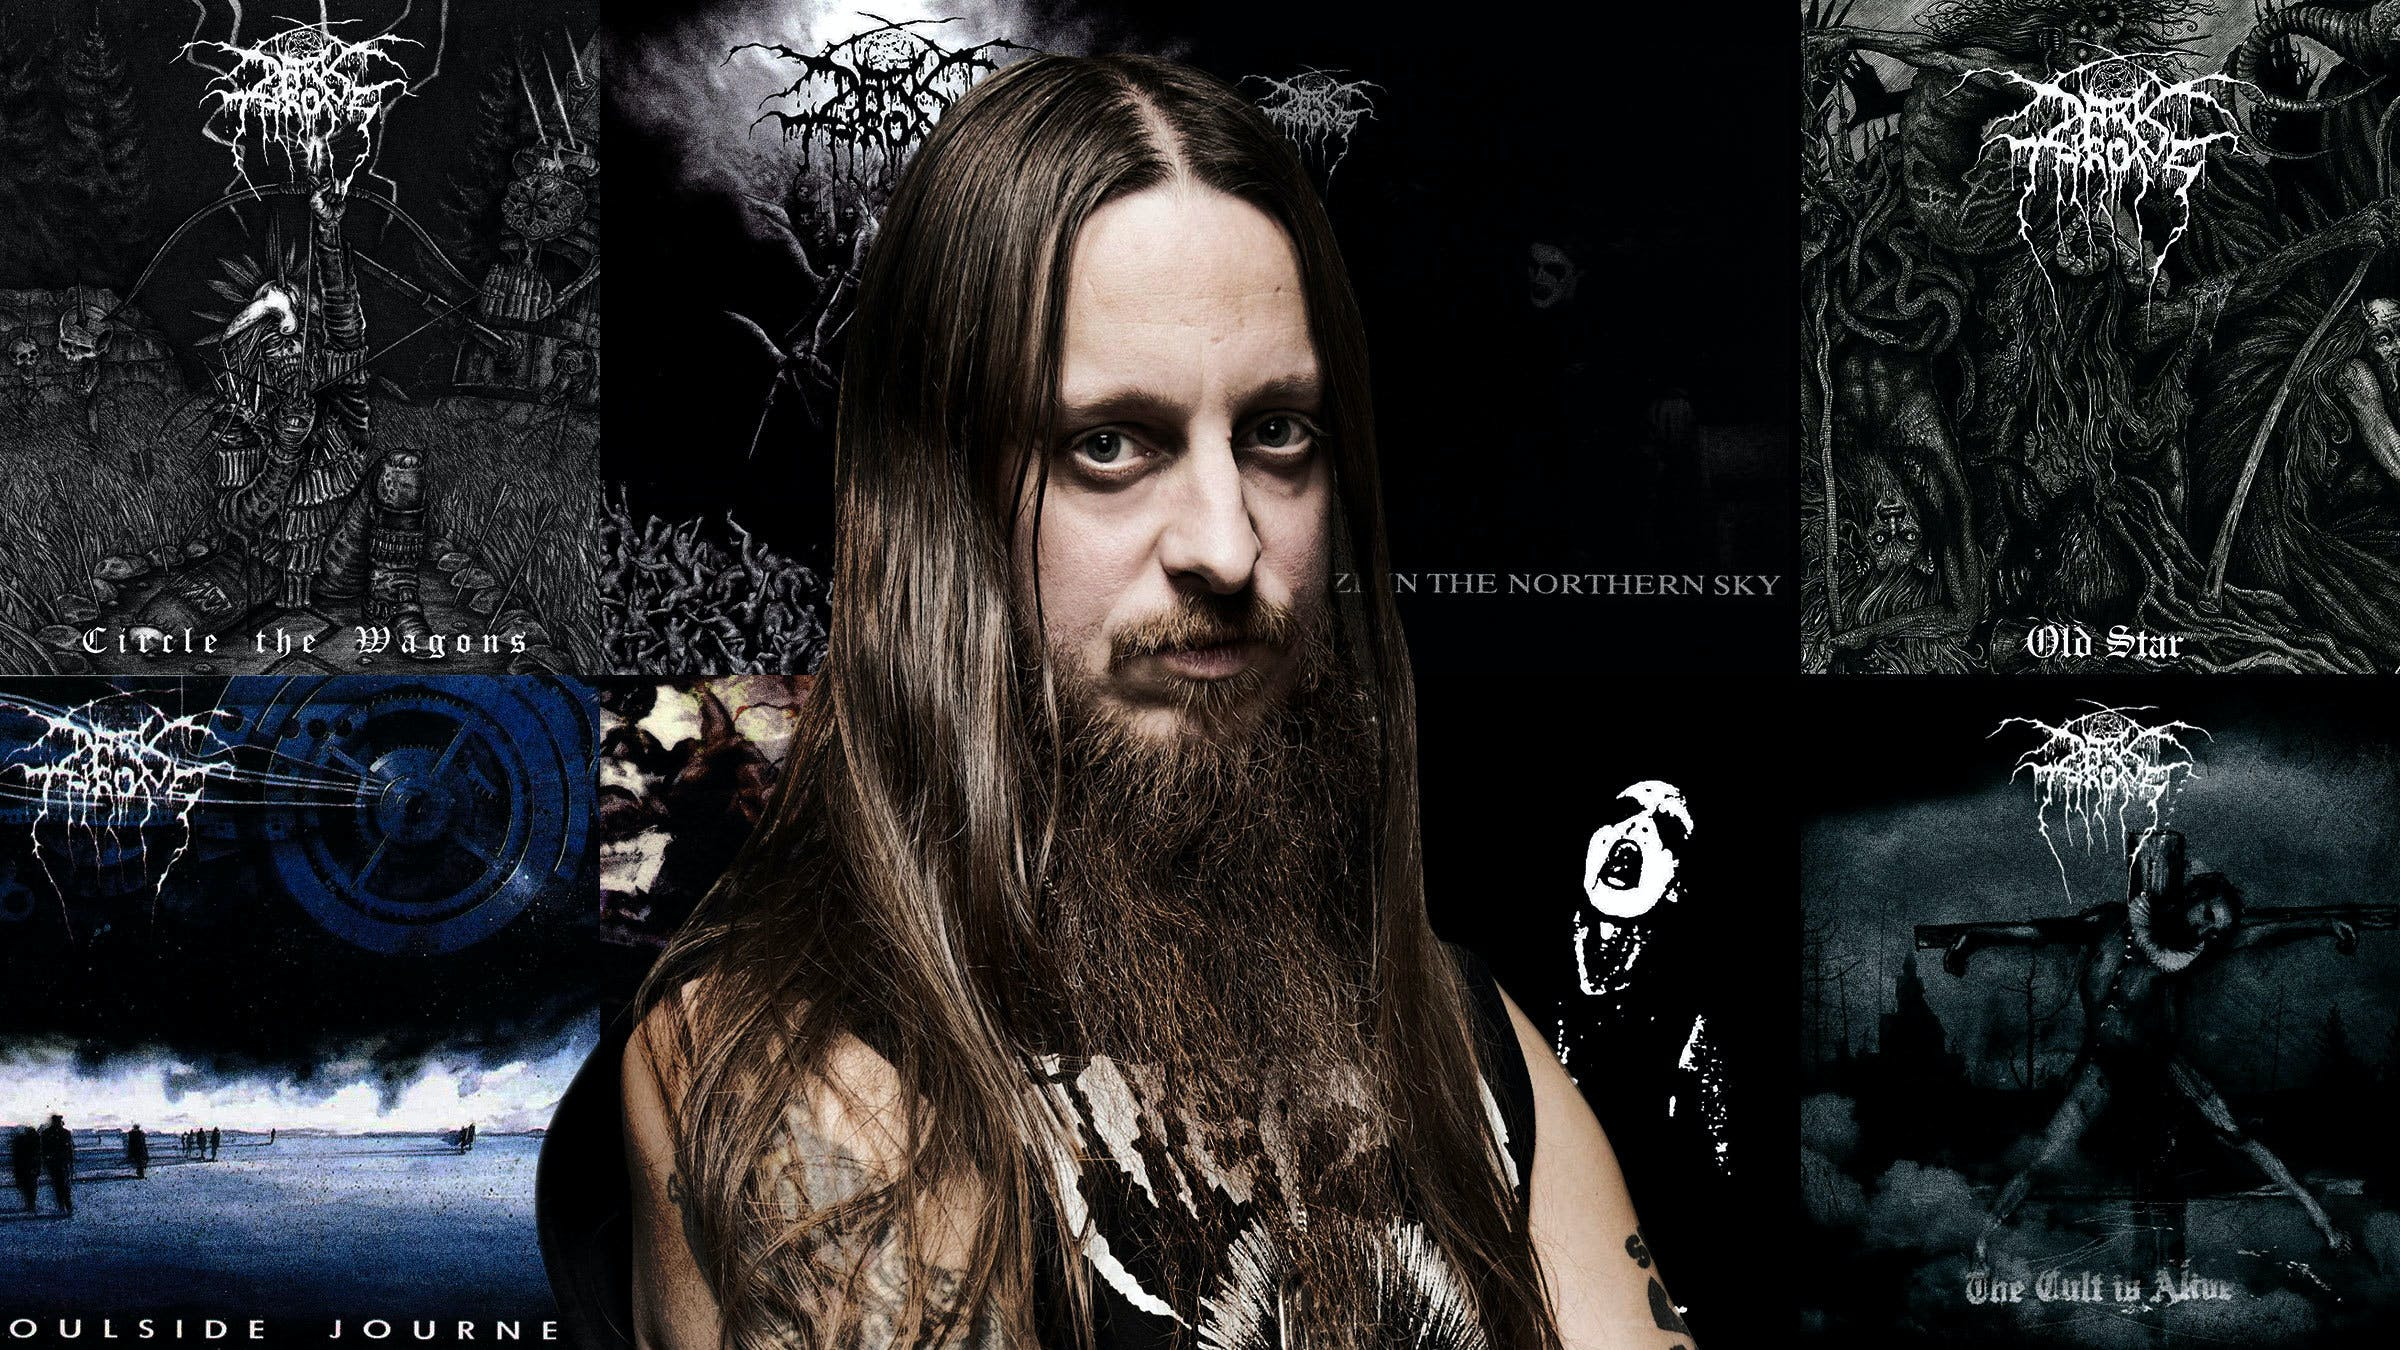 The Evolution Of Darkthrone, In The Words Of Fenriz